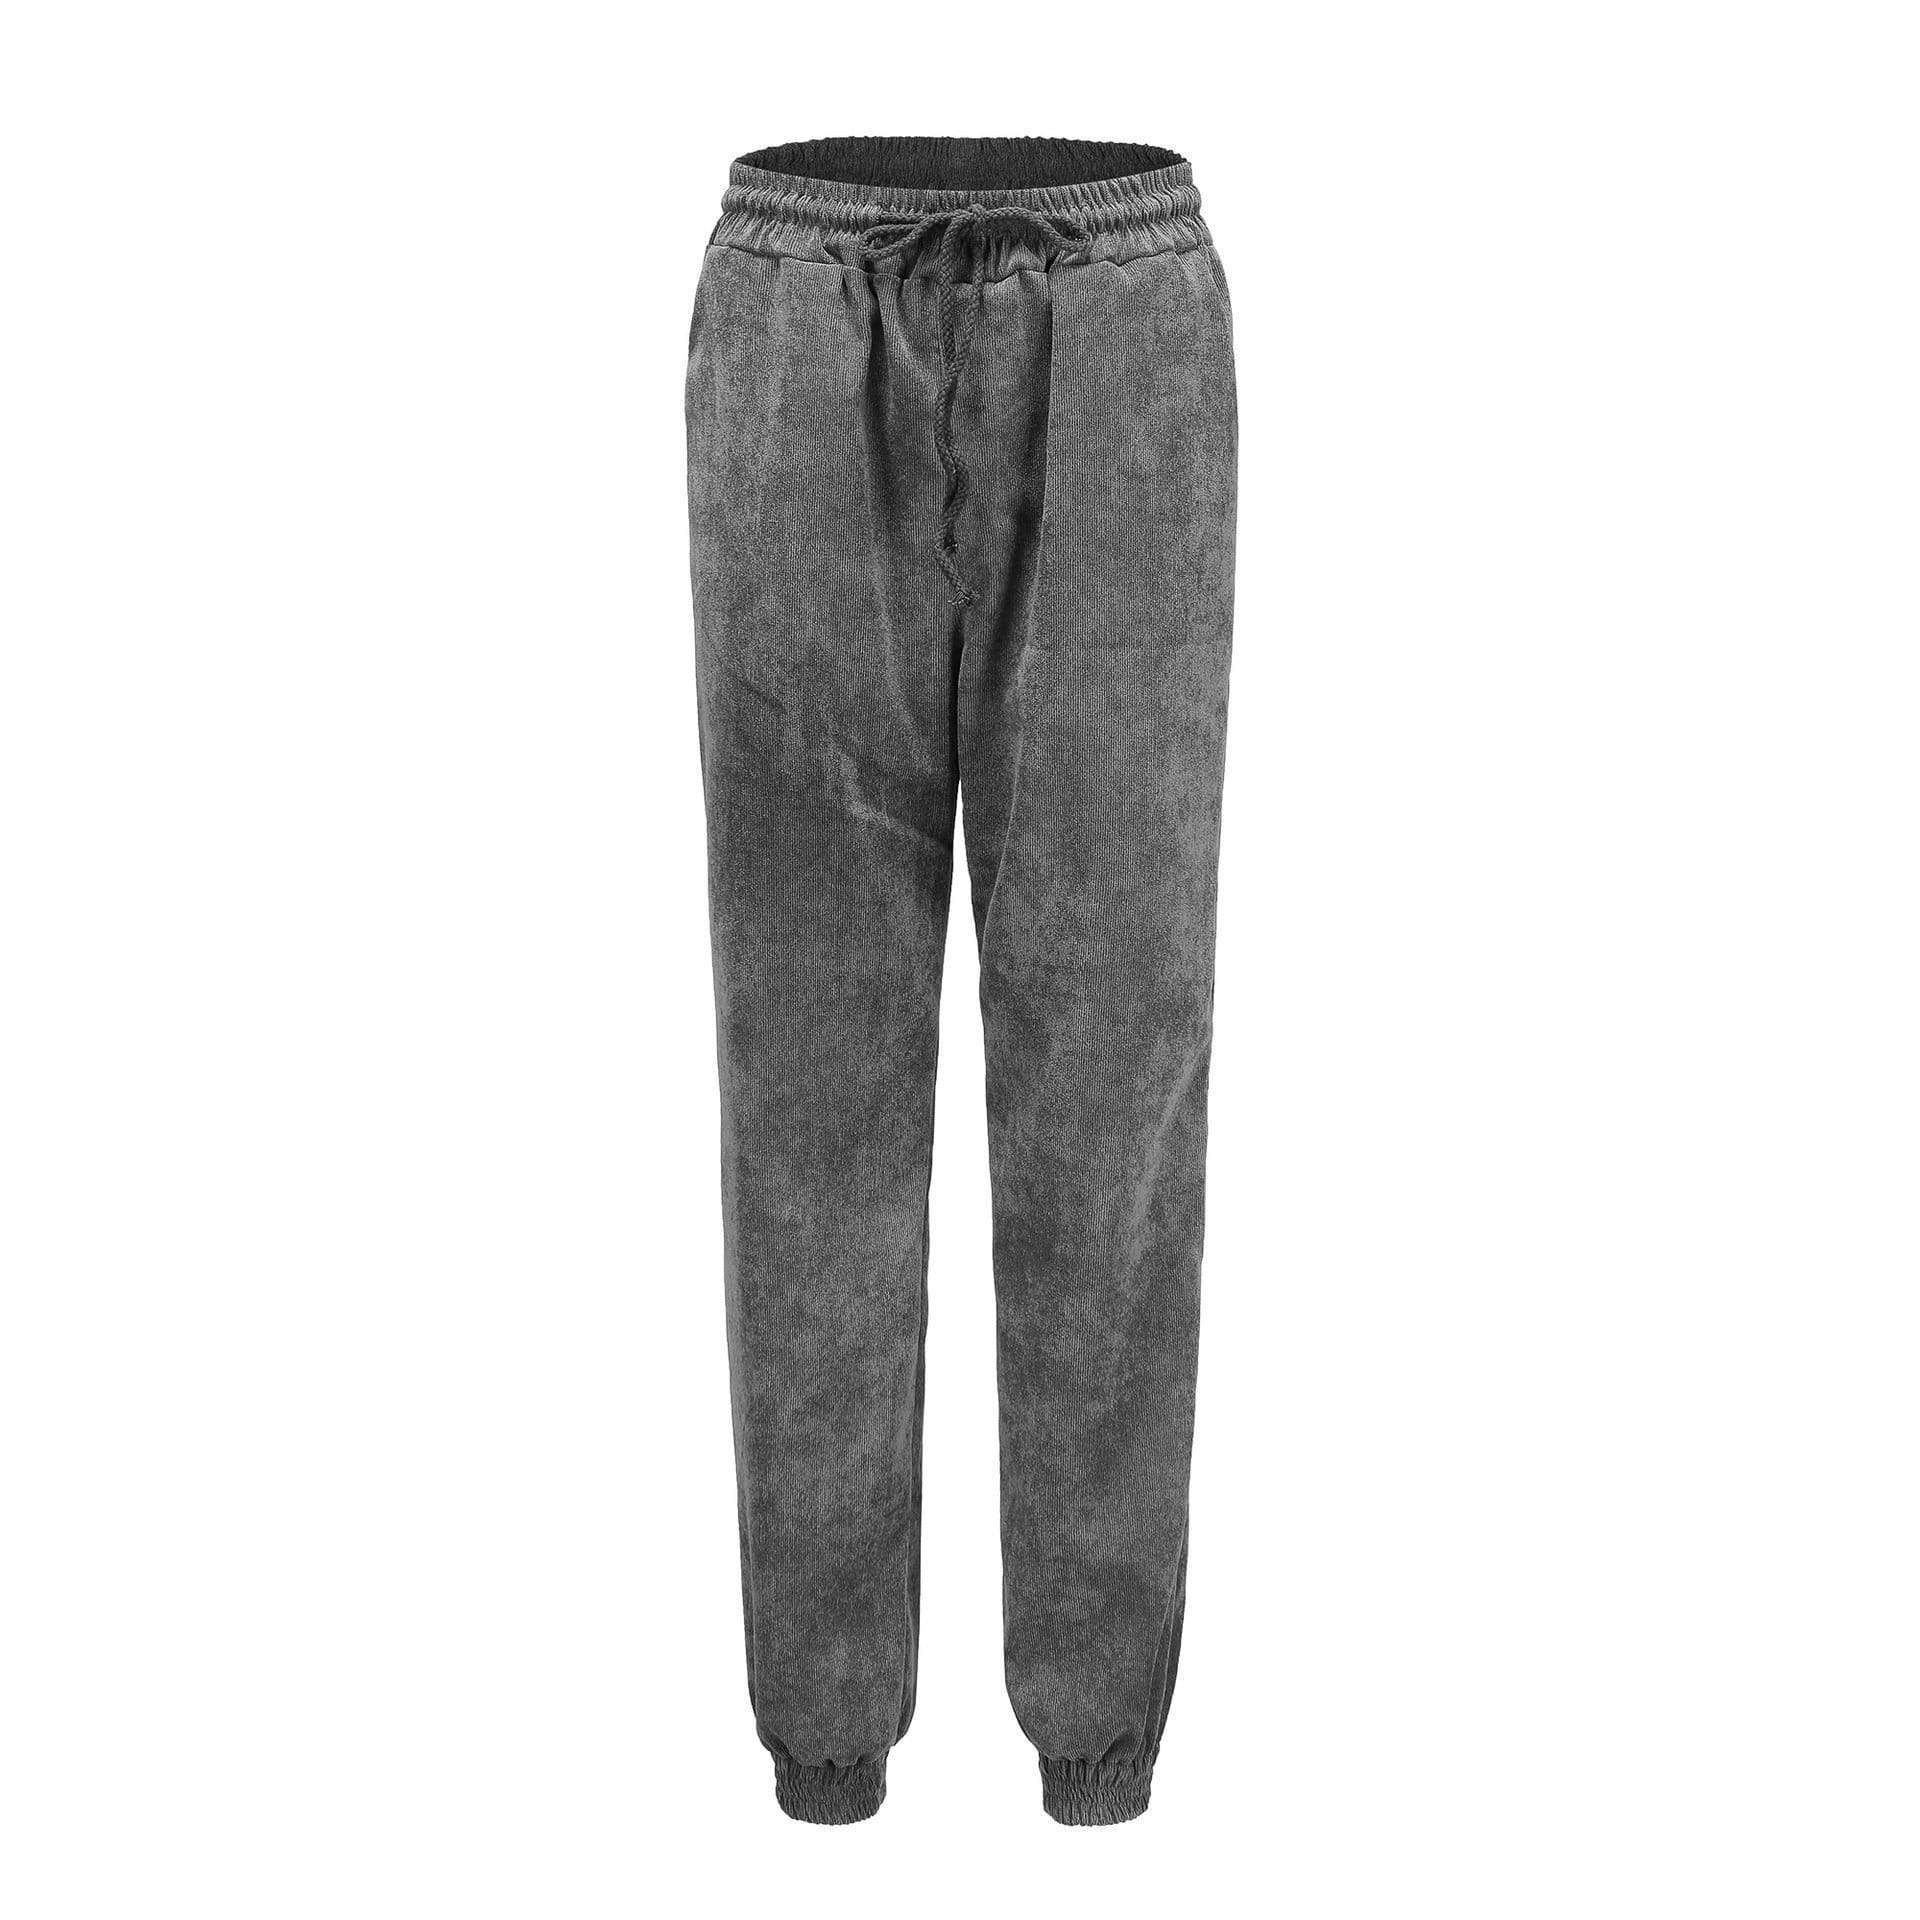 yoyoyoyoga.com Harem Pants Grey / S High-waist Corduroy Drawstring Casual Loose Trousers